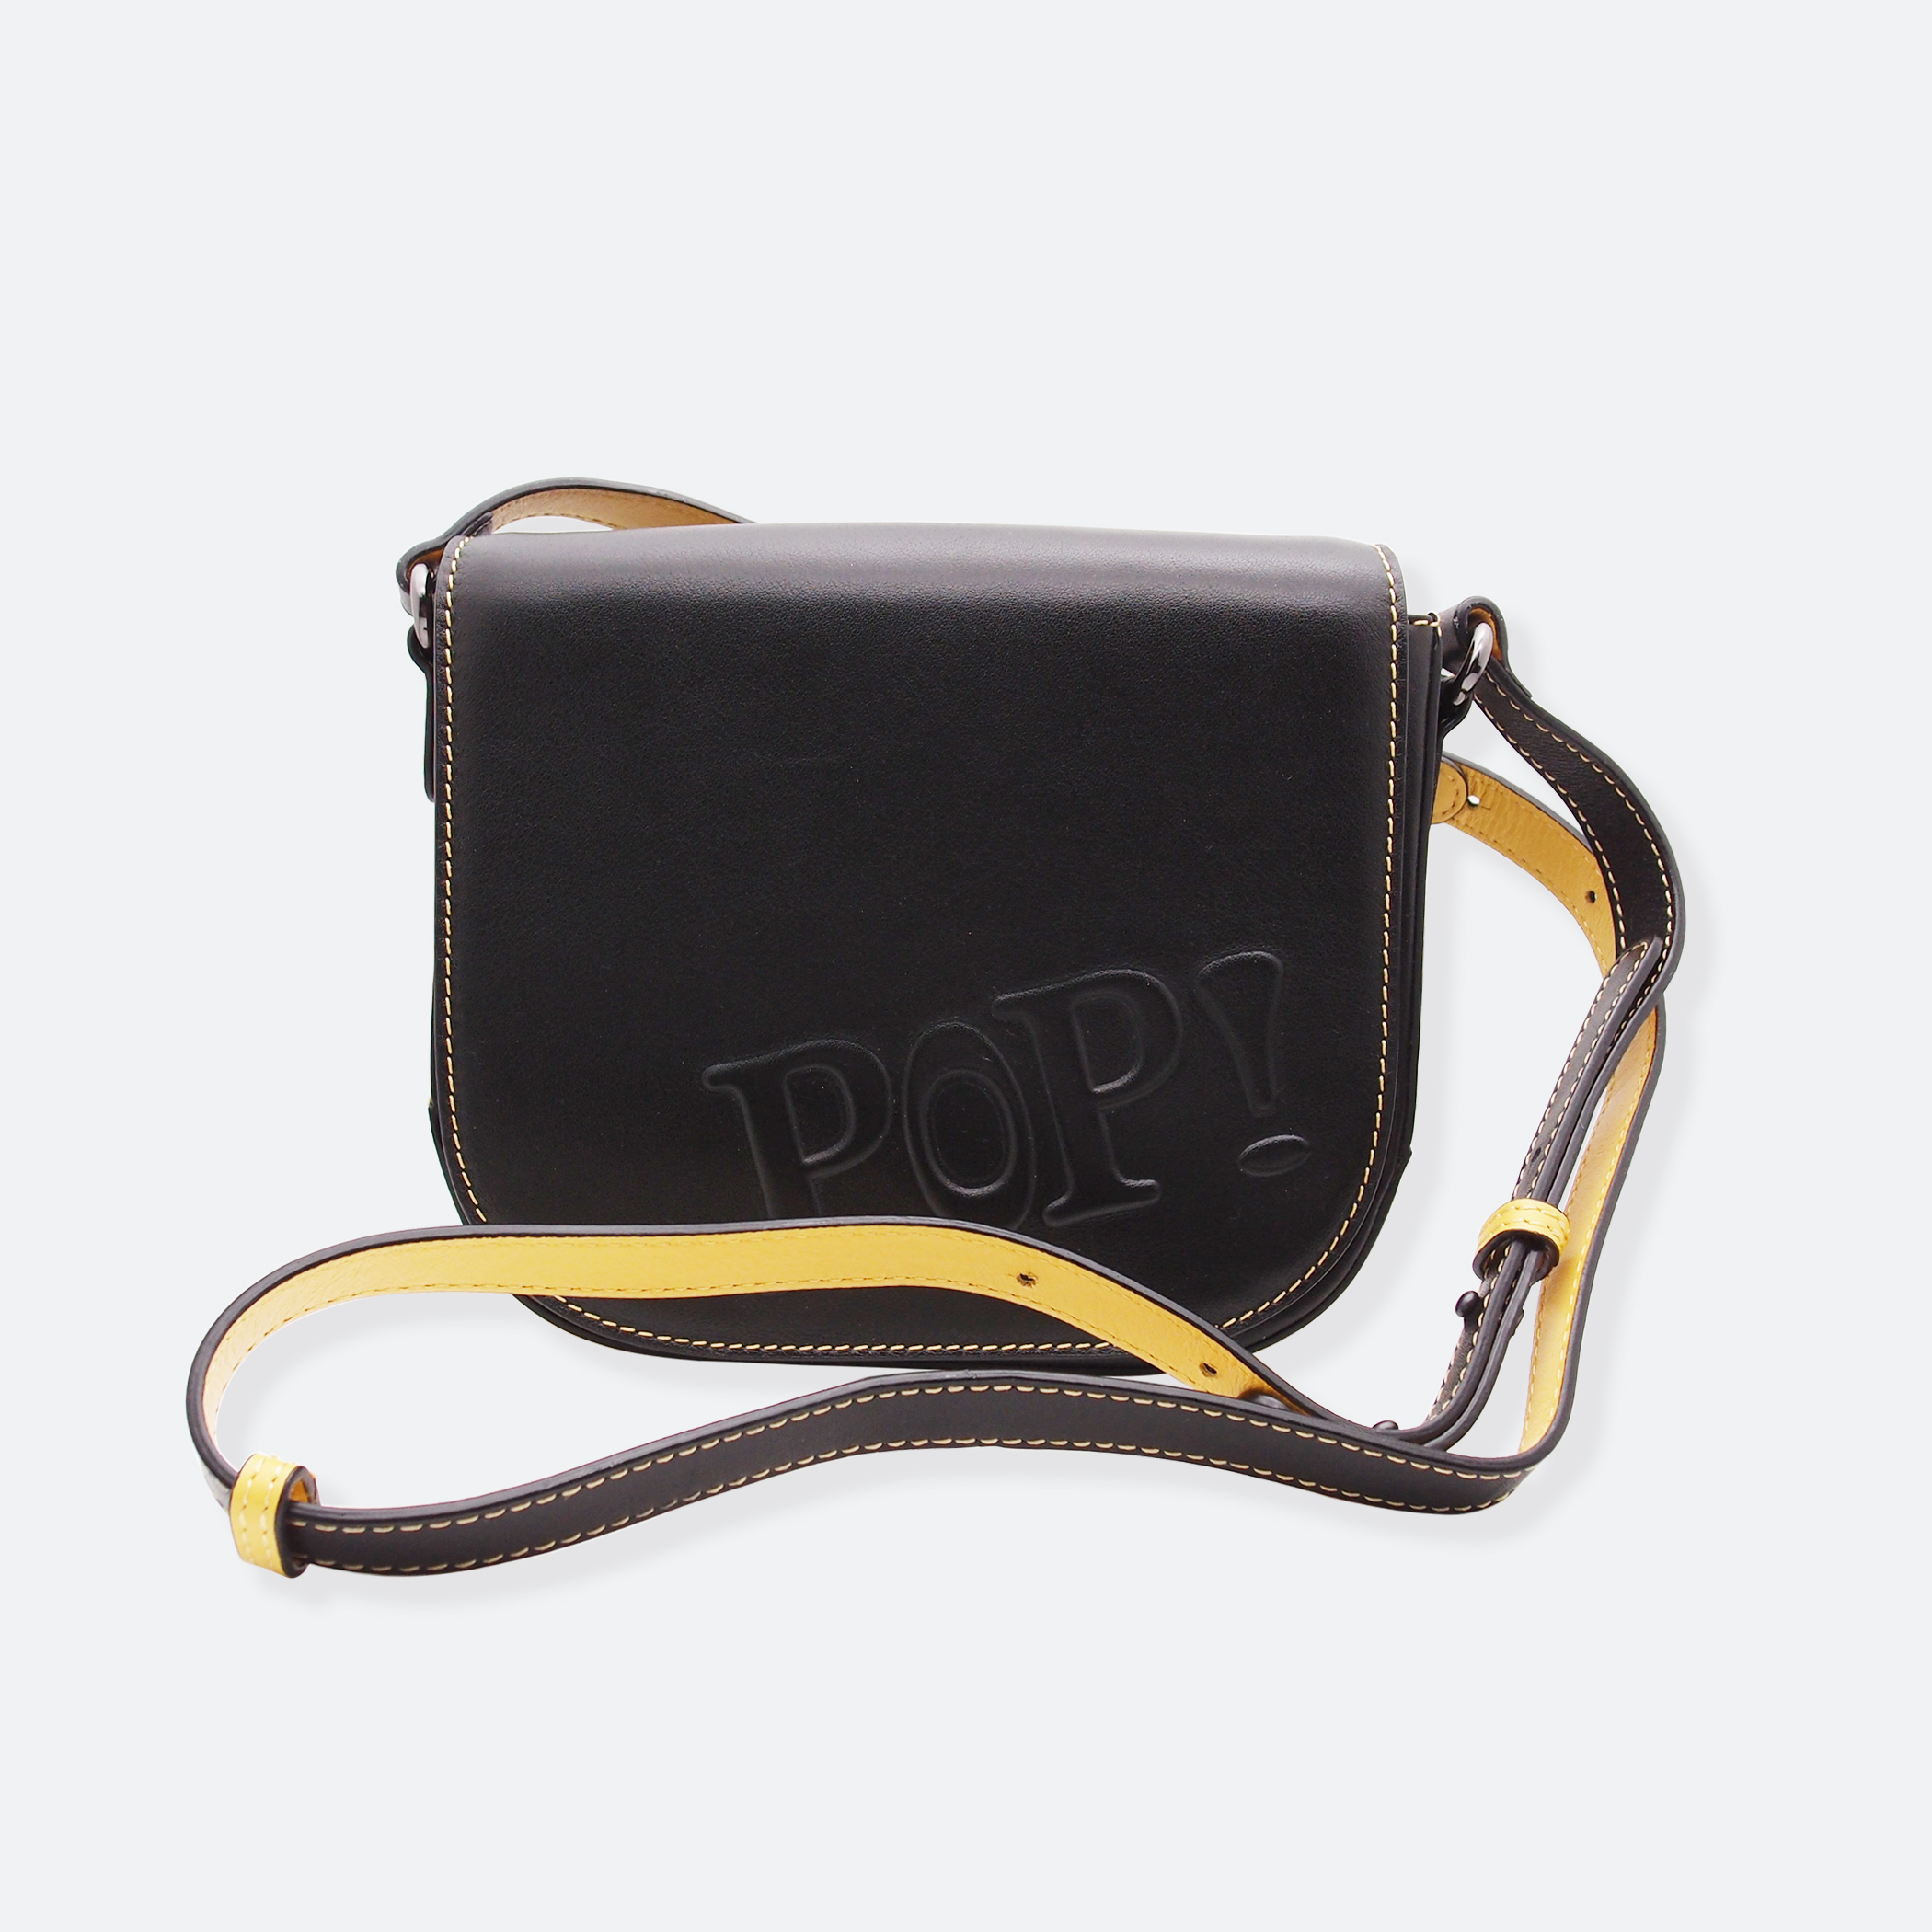 OhMart POP! Bag(Black-Yellow) 3